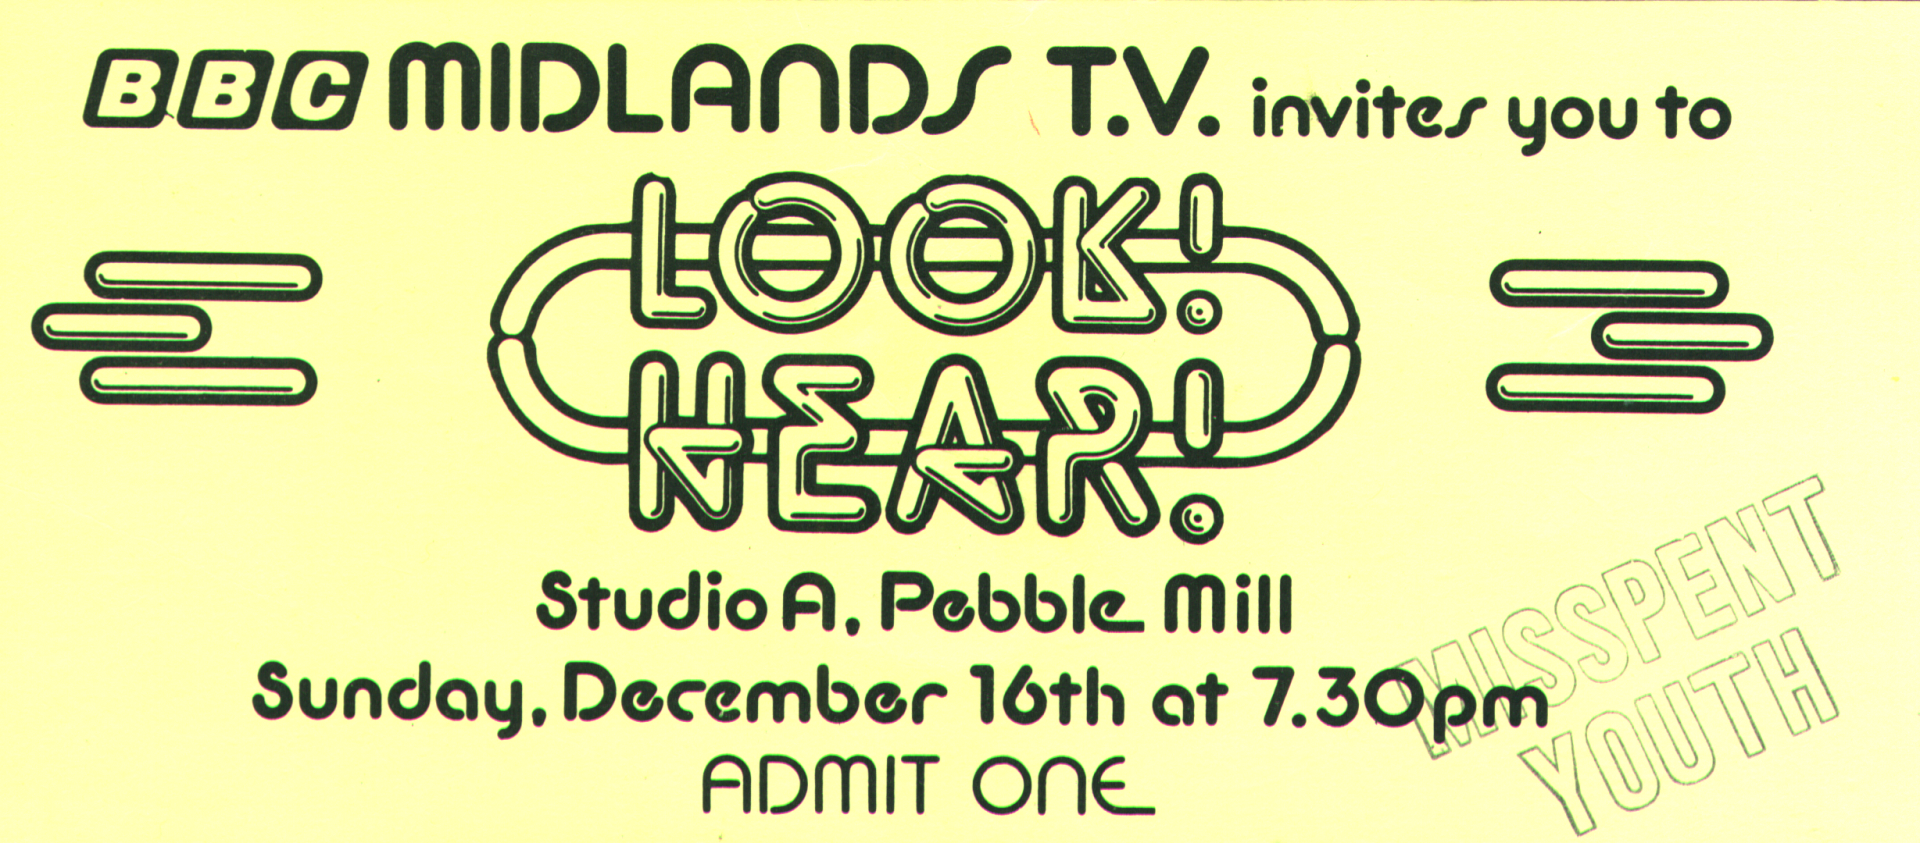 BBC TV Pebble Mill Look Hear Ticket for Misspent Youth 1979